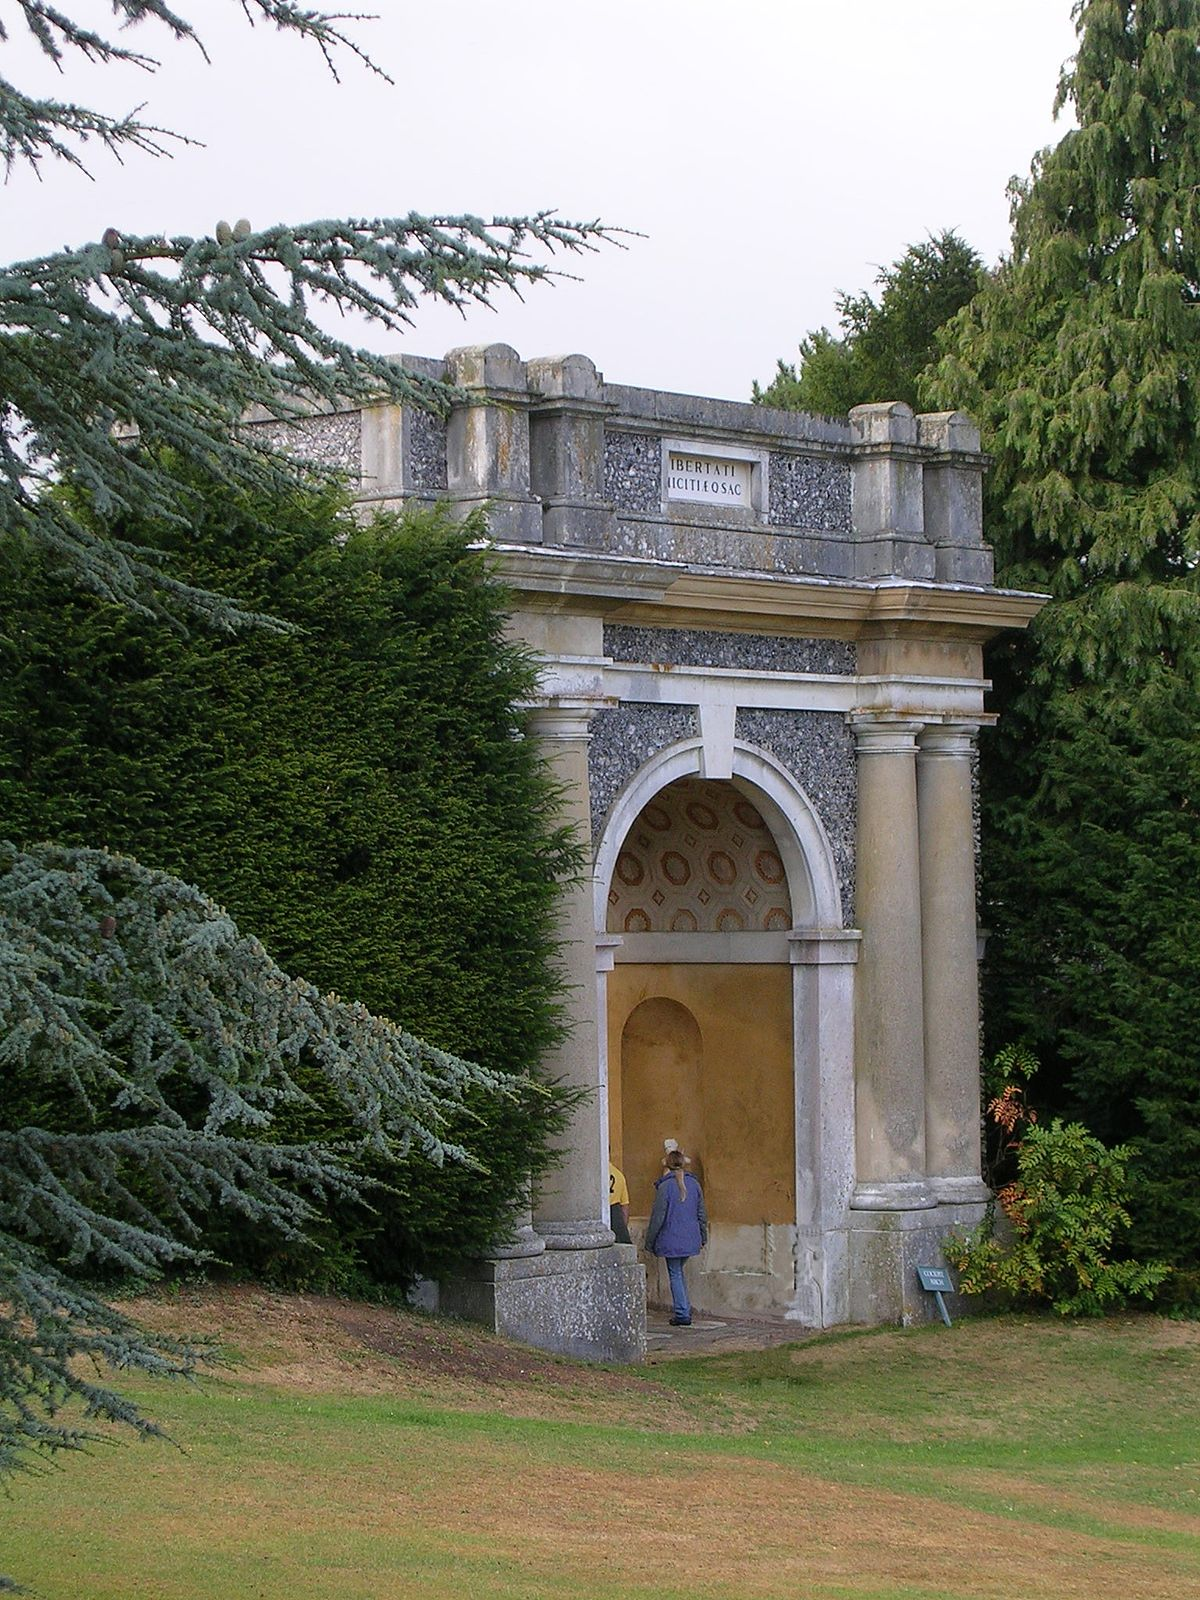 List Of Garden Structures At West Wycombe Park Wikipedia